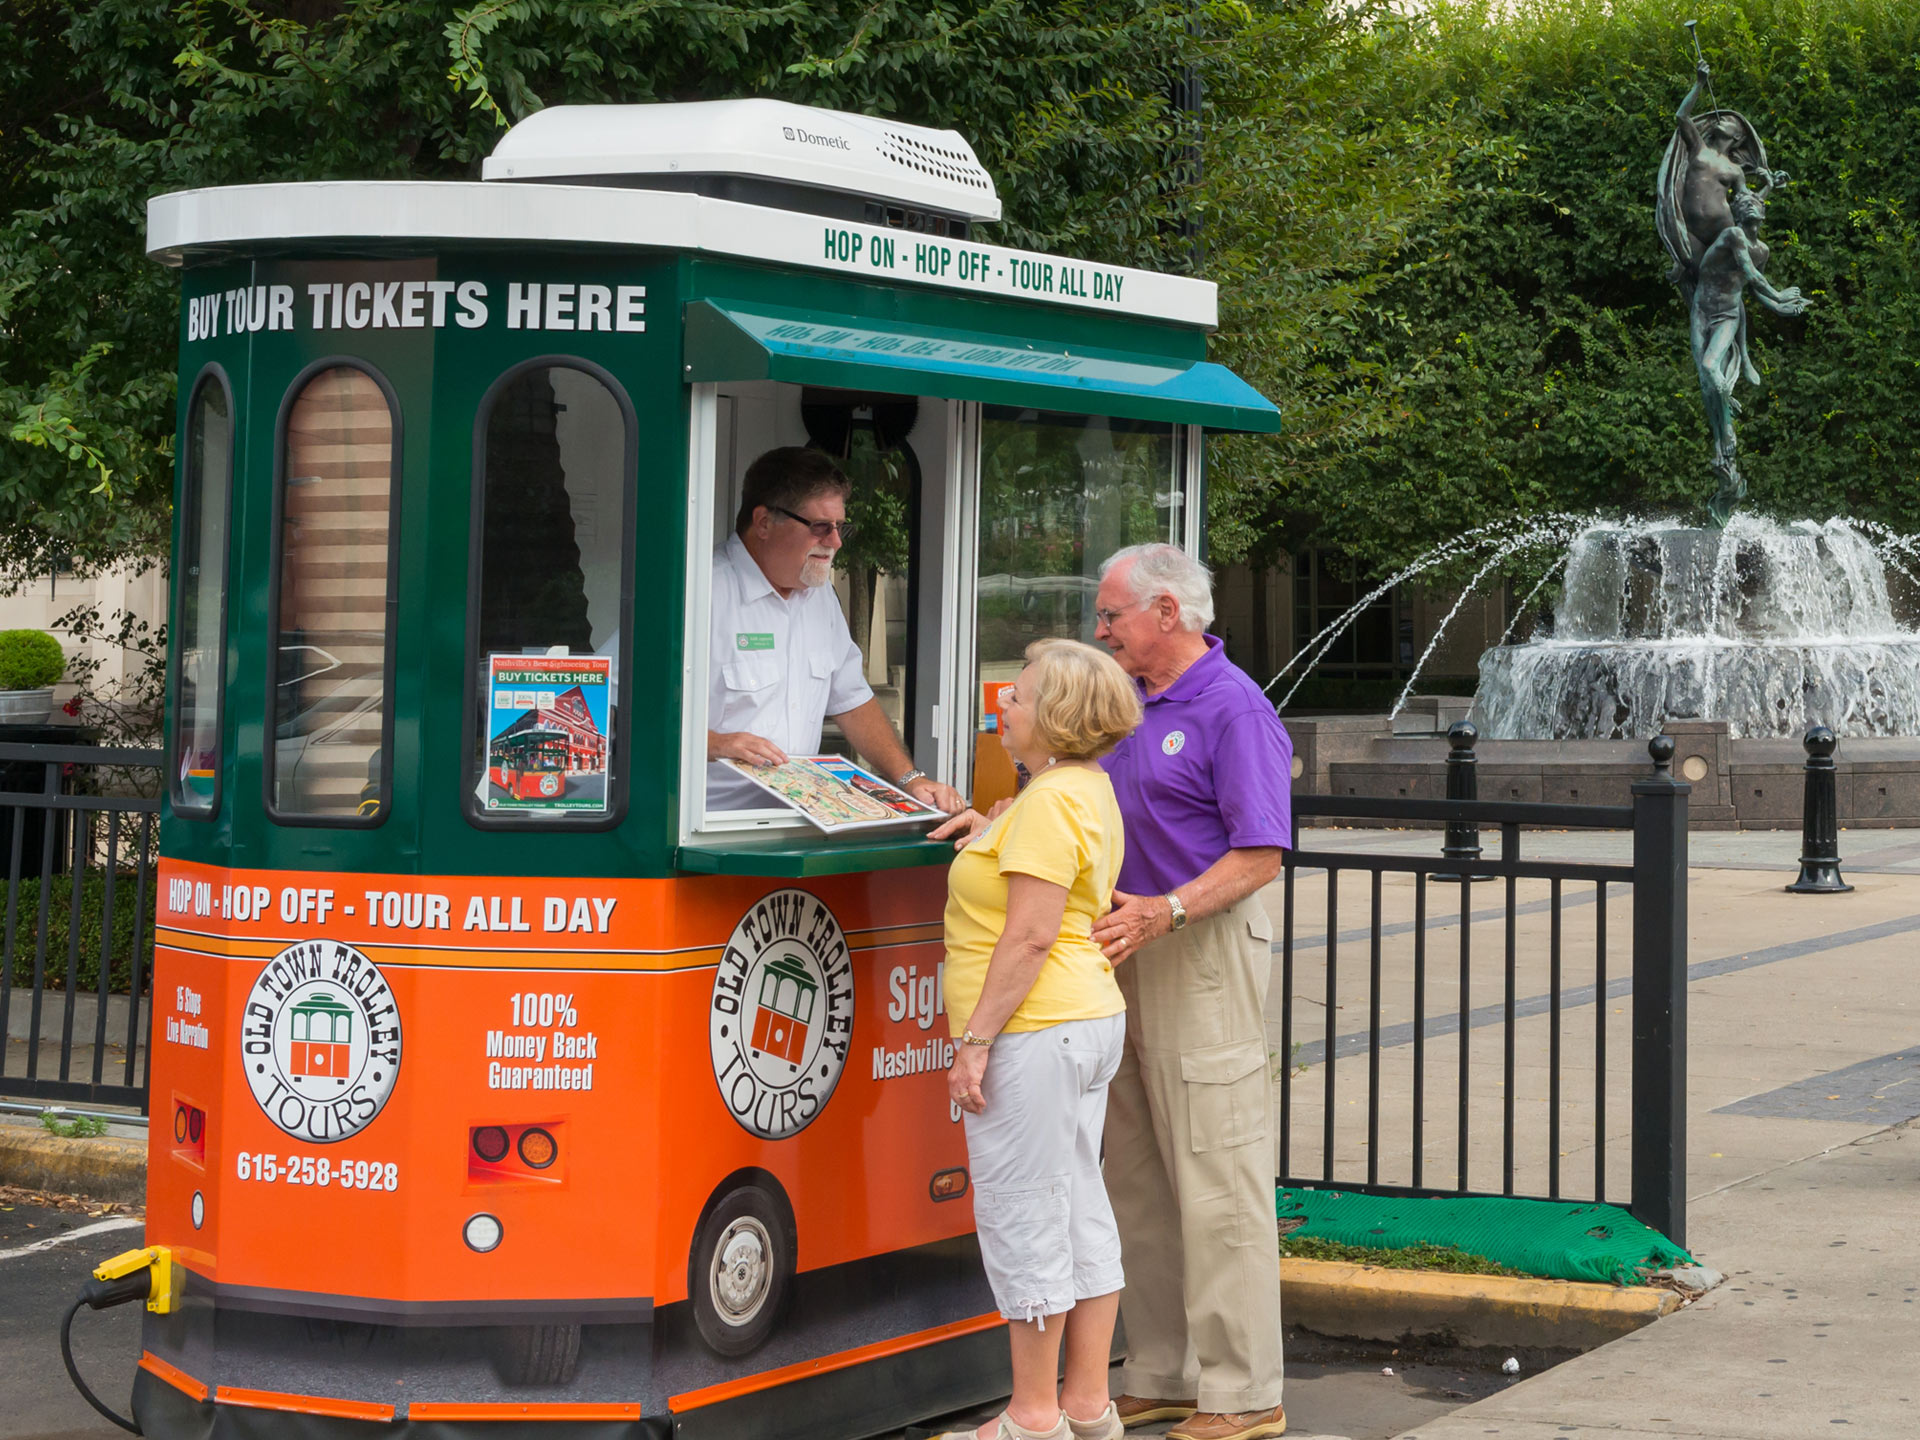 old town trolley branded ticket booth in nashville